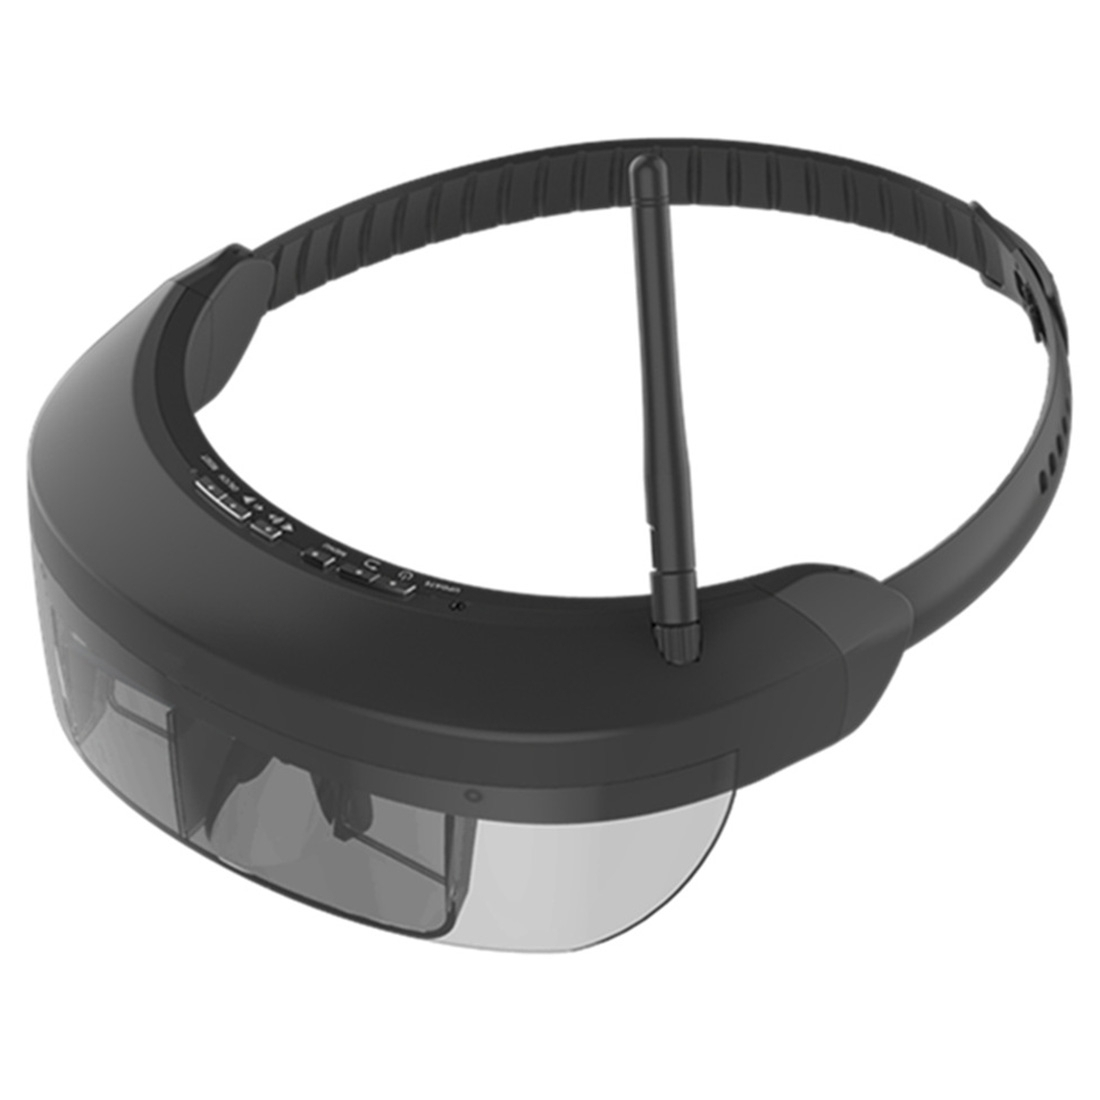 Top Deals Wireless FPV 3D Video Glasses Vision-730S with 5.8G 40CH 98 inch Display Private Virtual Theater for FPV QuaTop Deals Wireless FPV 3D Video Glasses Vision-730S with 5.8G 40CH 98 inch Display Private Virtual Theater for FPV Qua